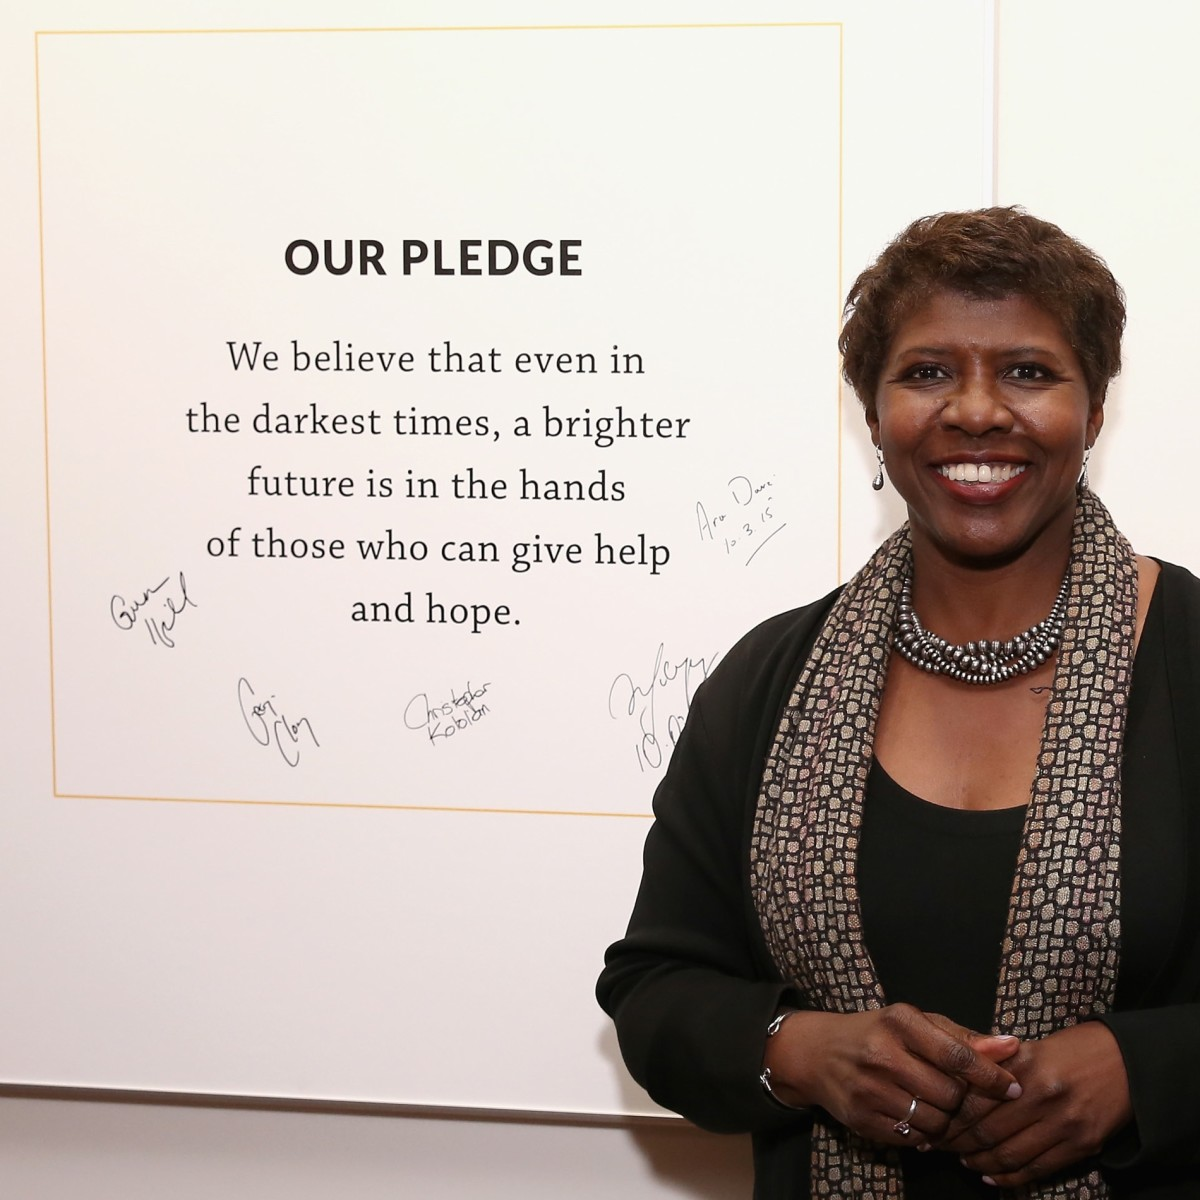 Gwen Ifill photo via Getty Images